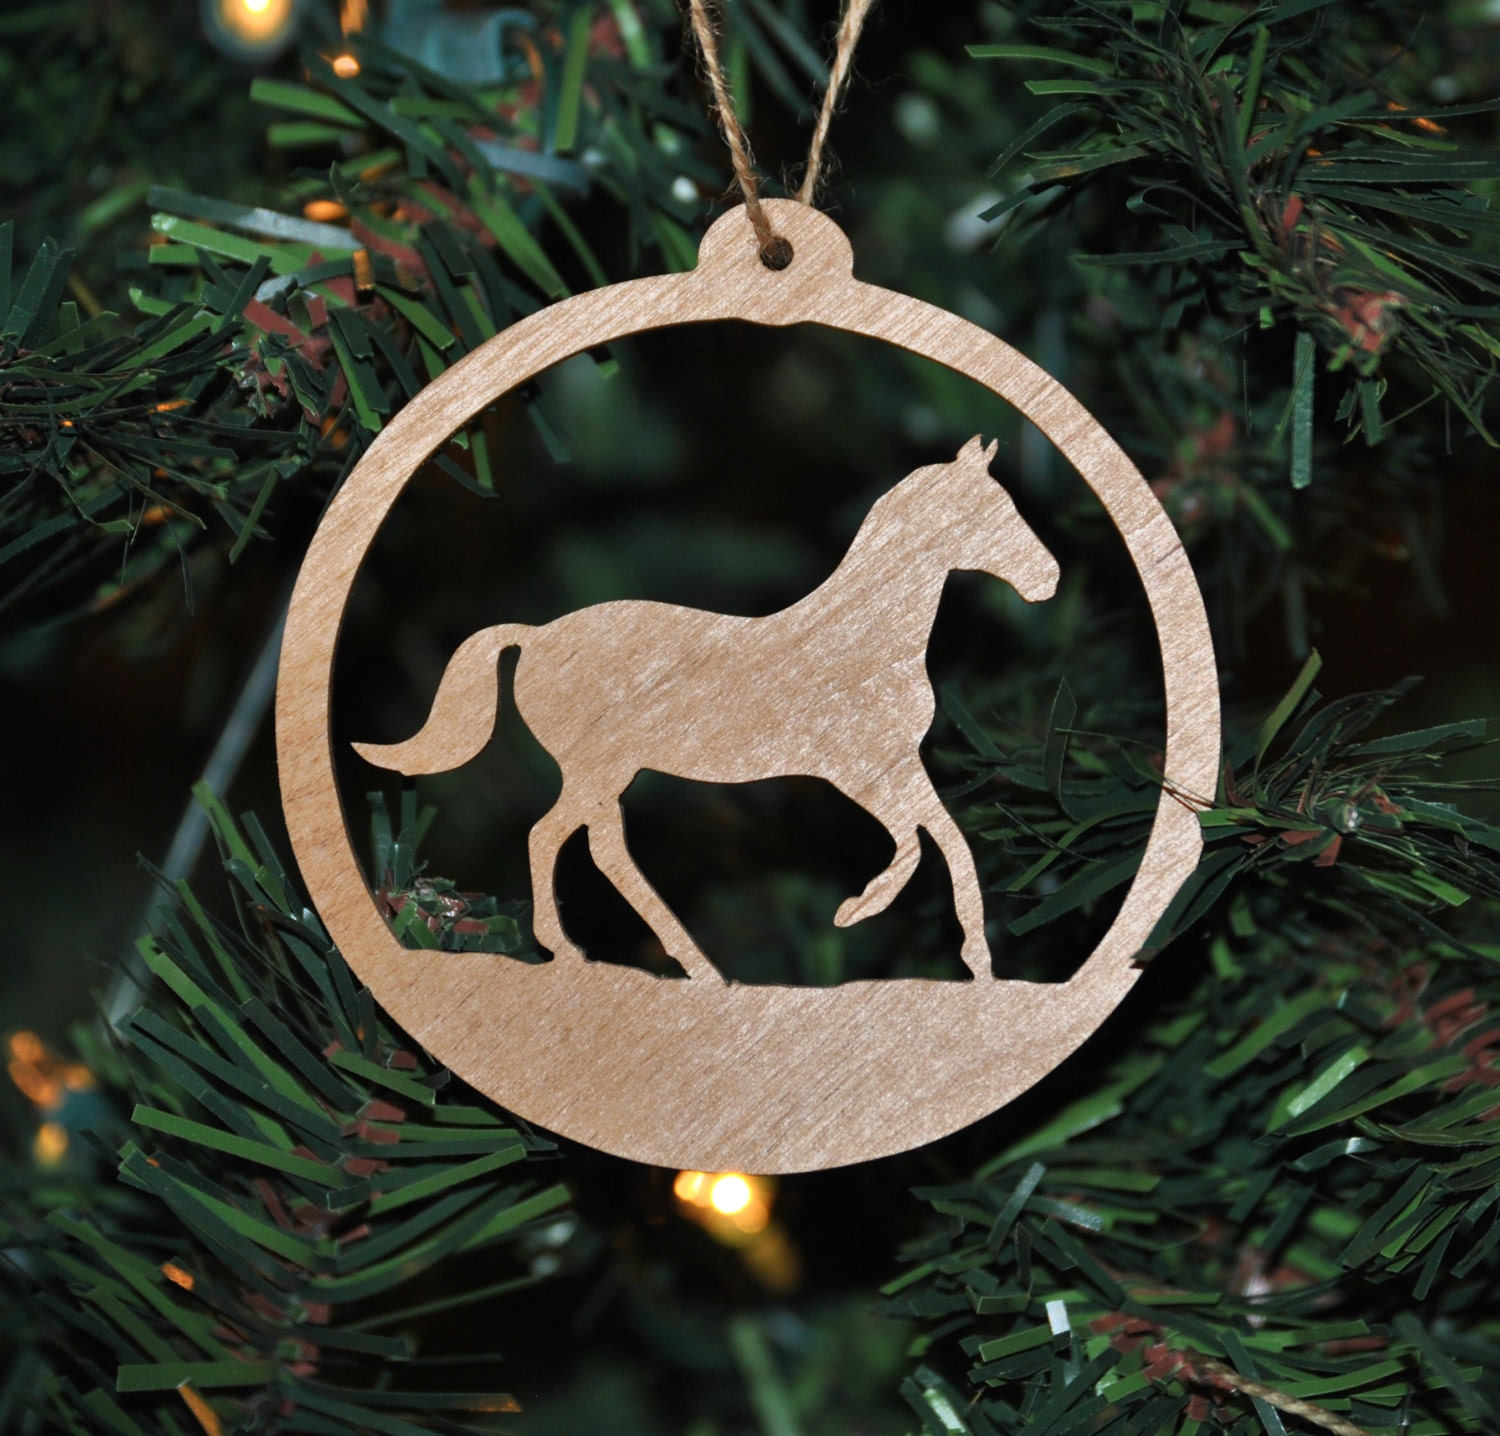 Christmas Tree Ornaments Horse: Horse Christmas Tree Ornament